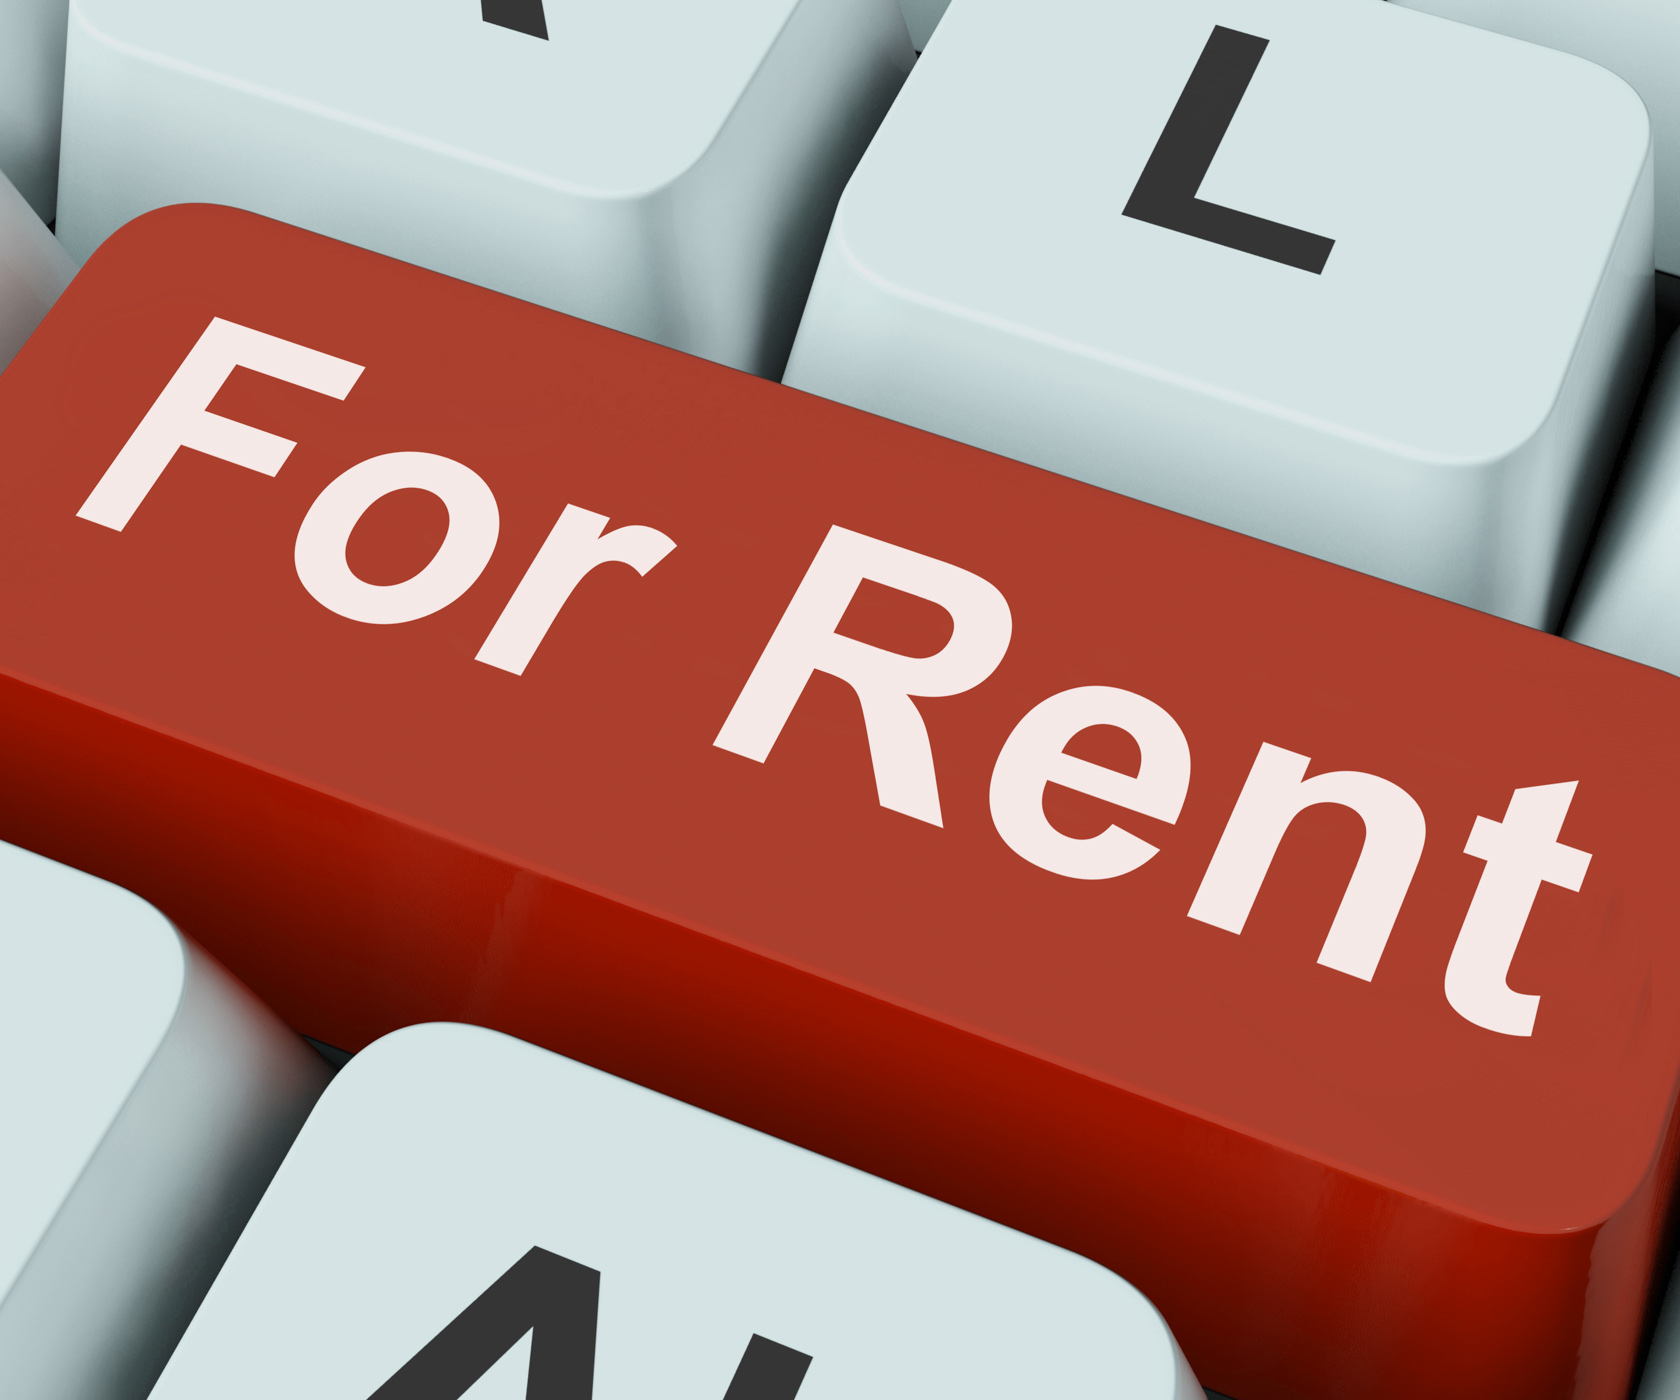 For rent key means lease or rental photo